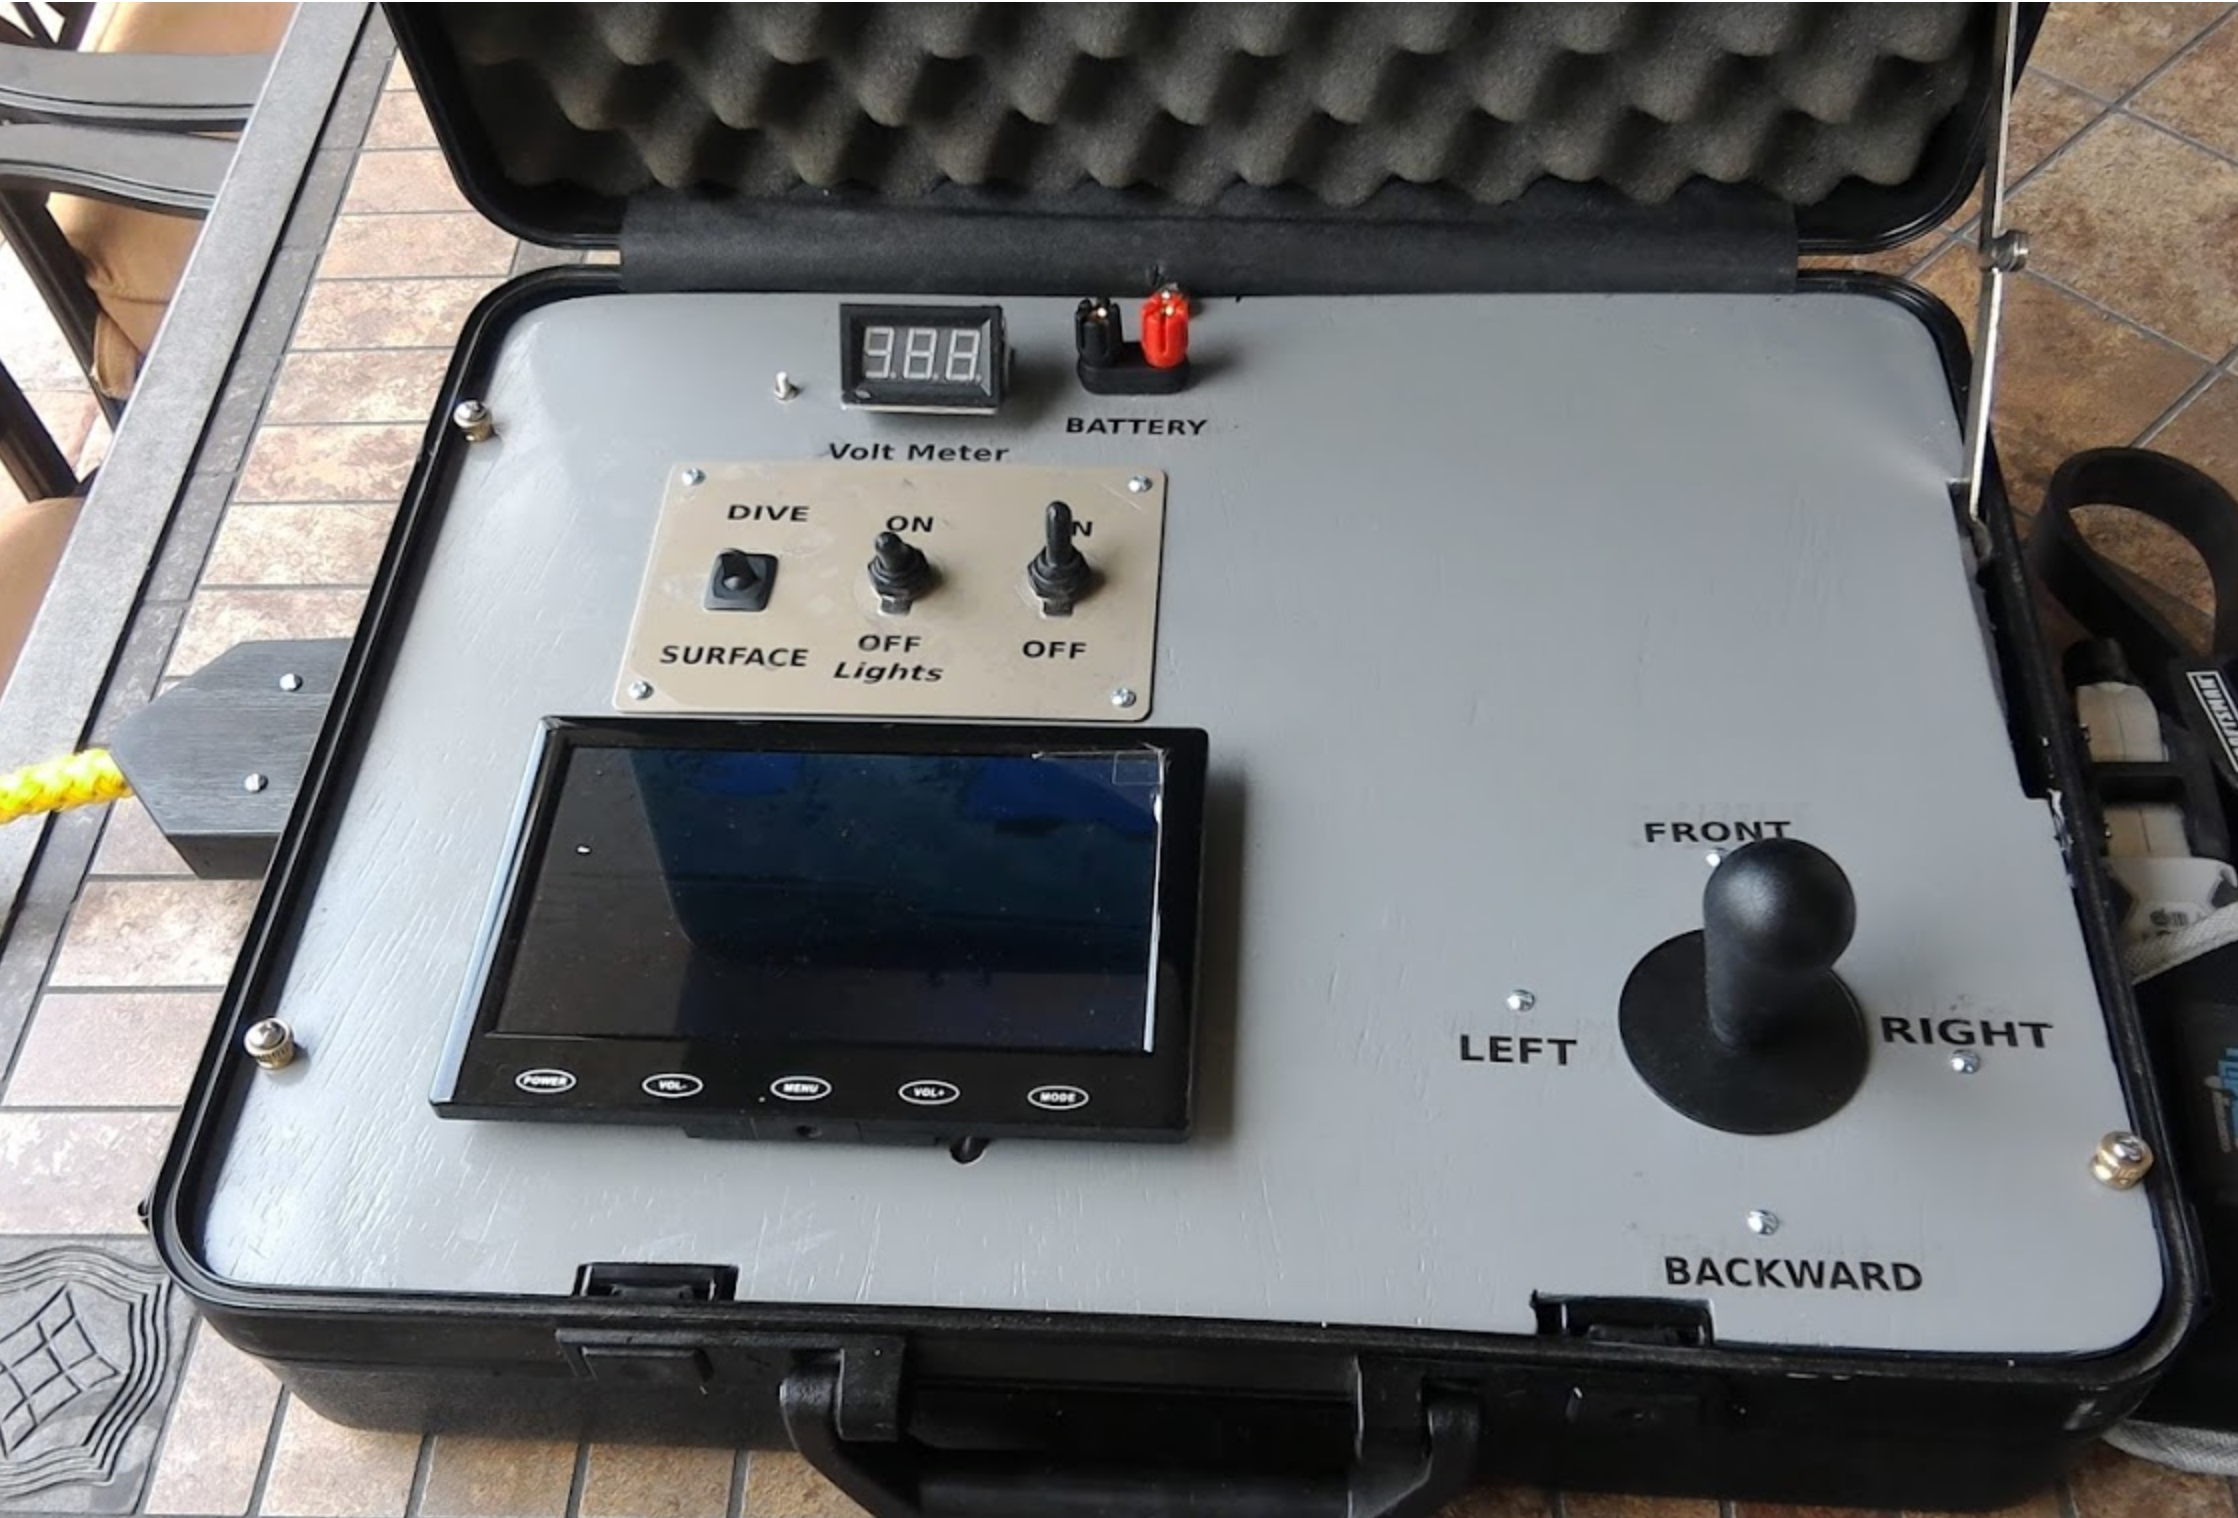 This Is The Control Box For The Rov I Made Display Can Be Adjusted To Any Angle And A Voltmeter Can Keep Track Of The Power Left In T Bastelideen Basteln